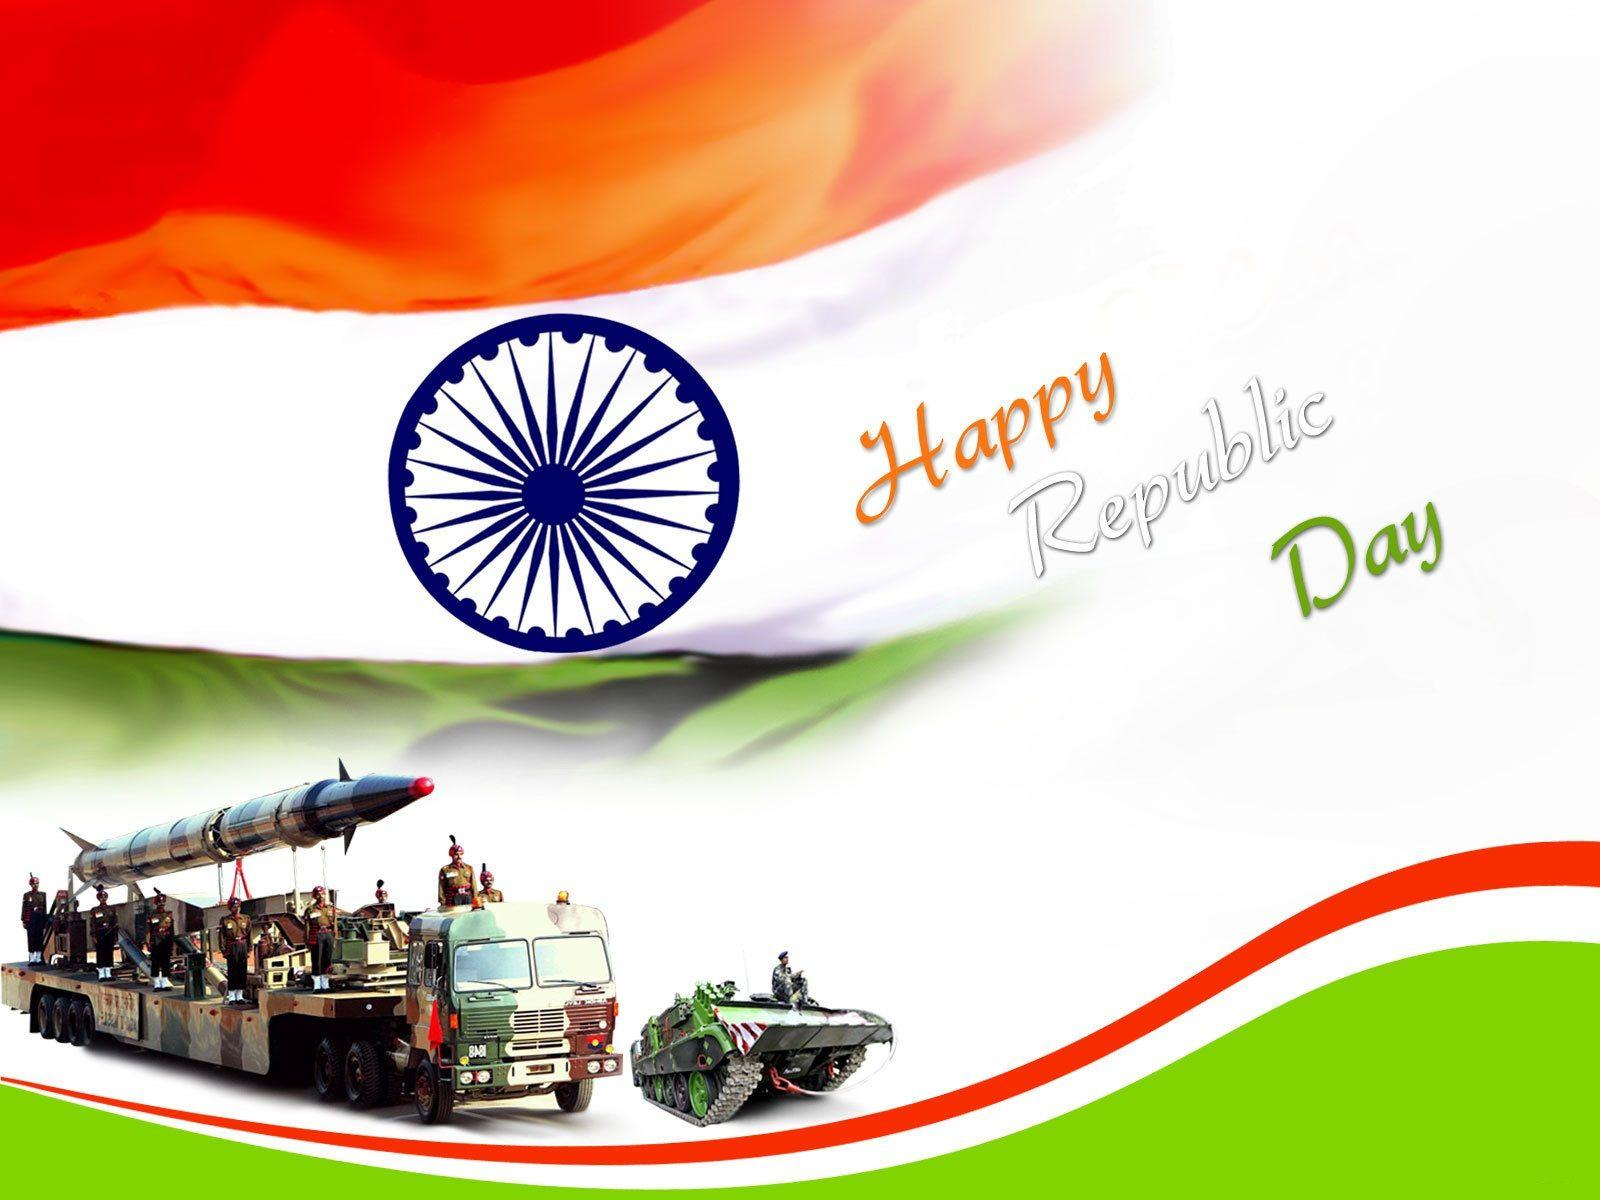 2015} India Republic Day HD Wallpapers, Image